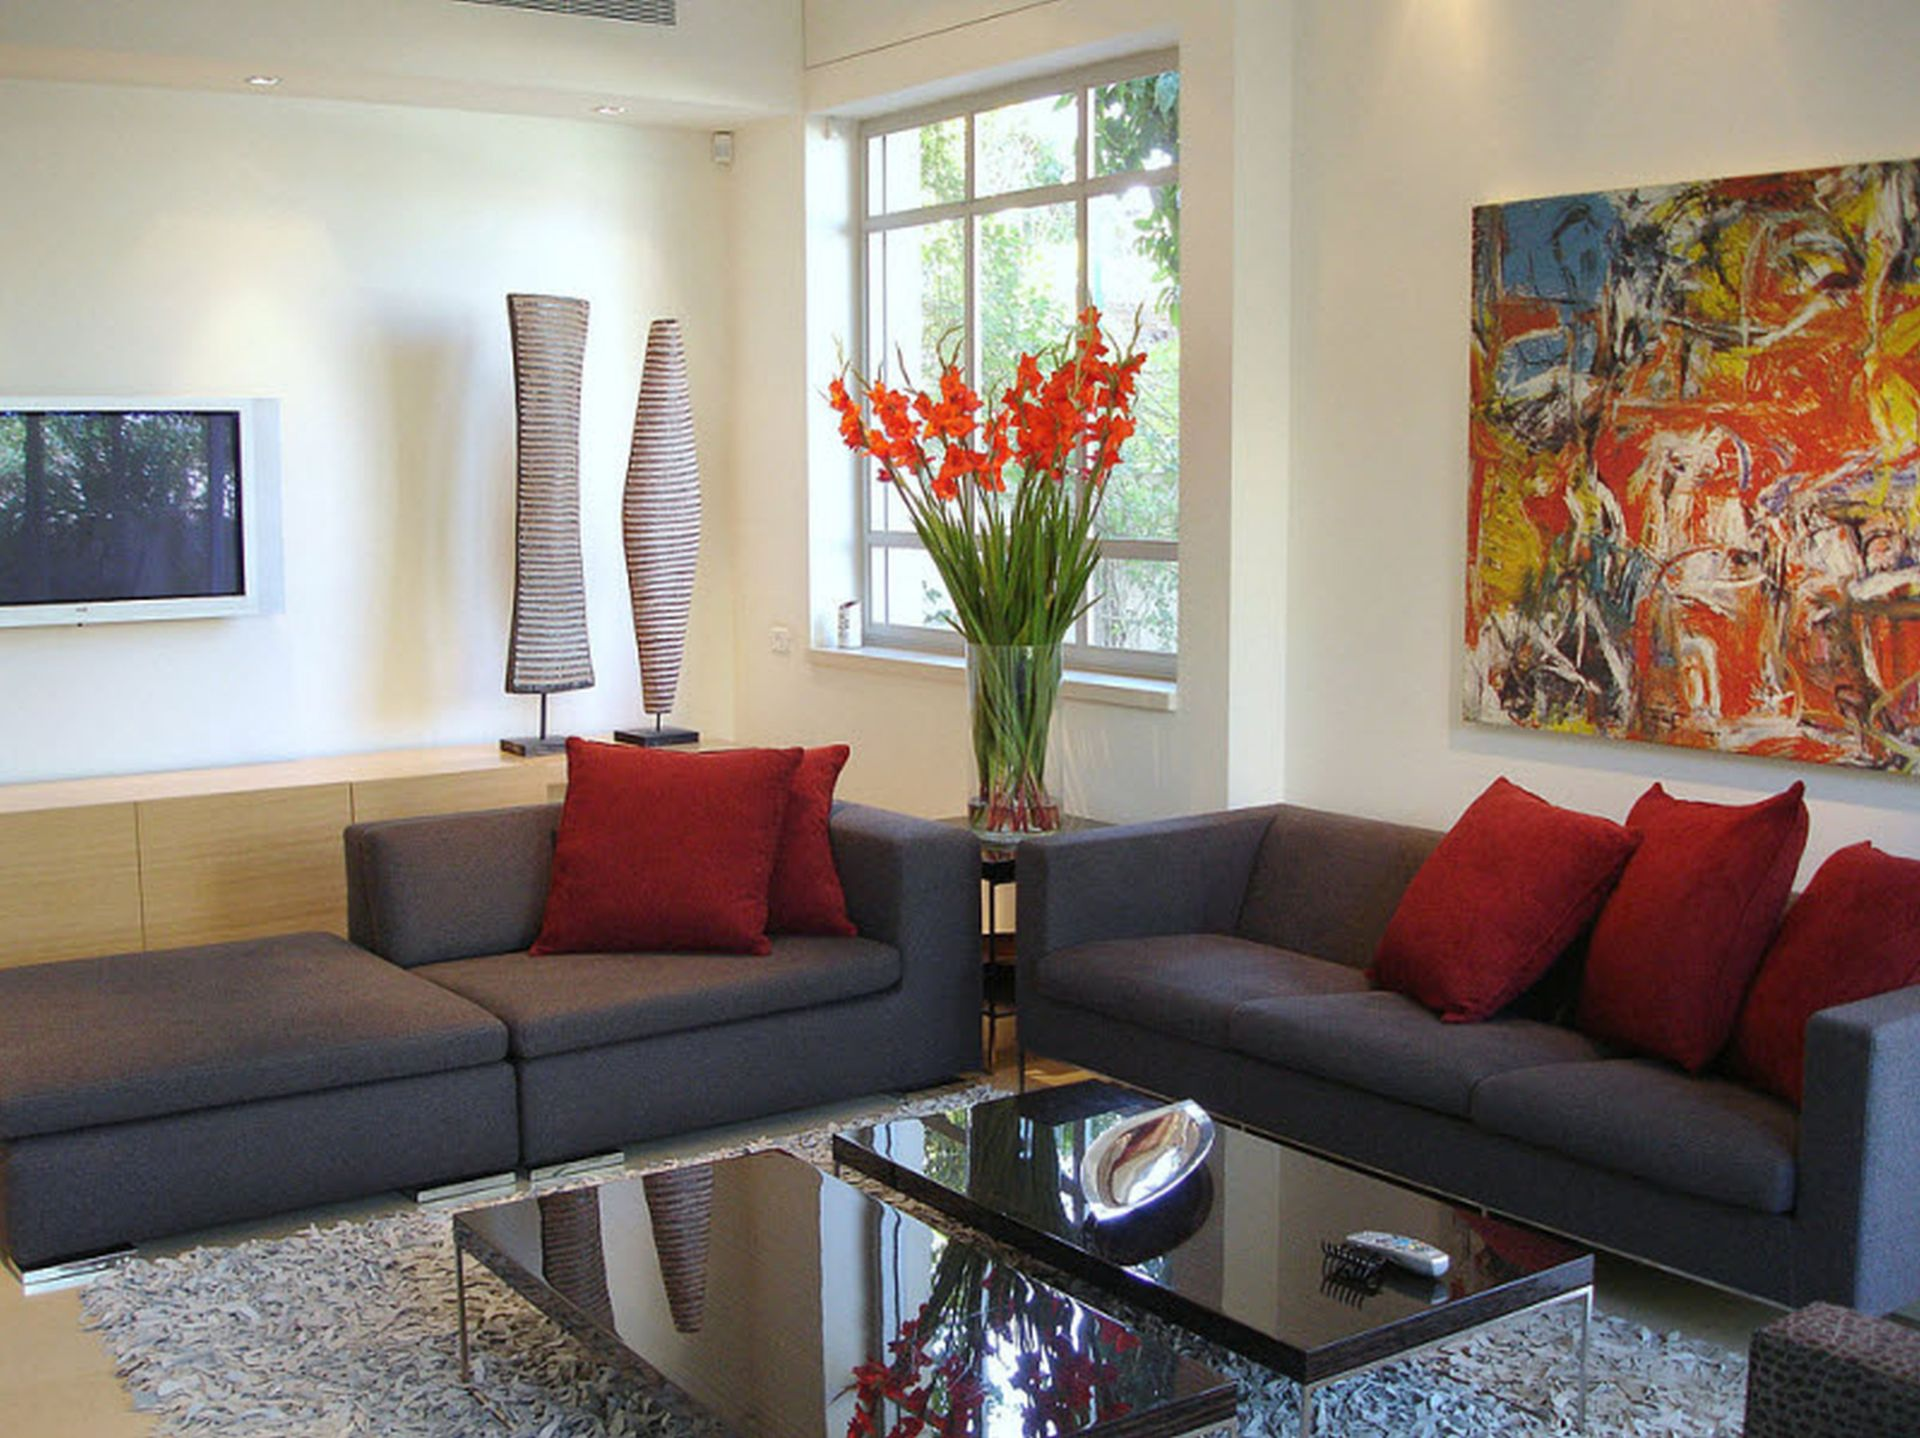 affordable-decorating-ideas-for-living-rooms-beautiful-congenial-decor-living-then-cheap-photos-then-living-room-of-affordable-decorating-ideas-for-living-rooms.jpg